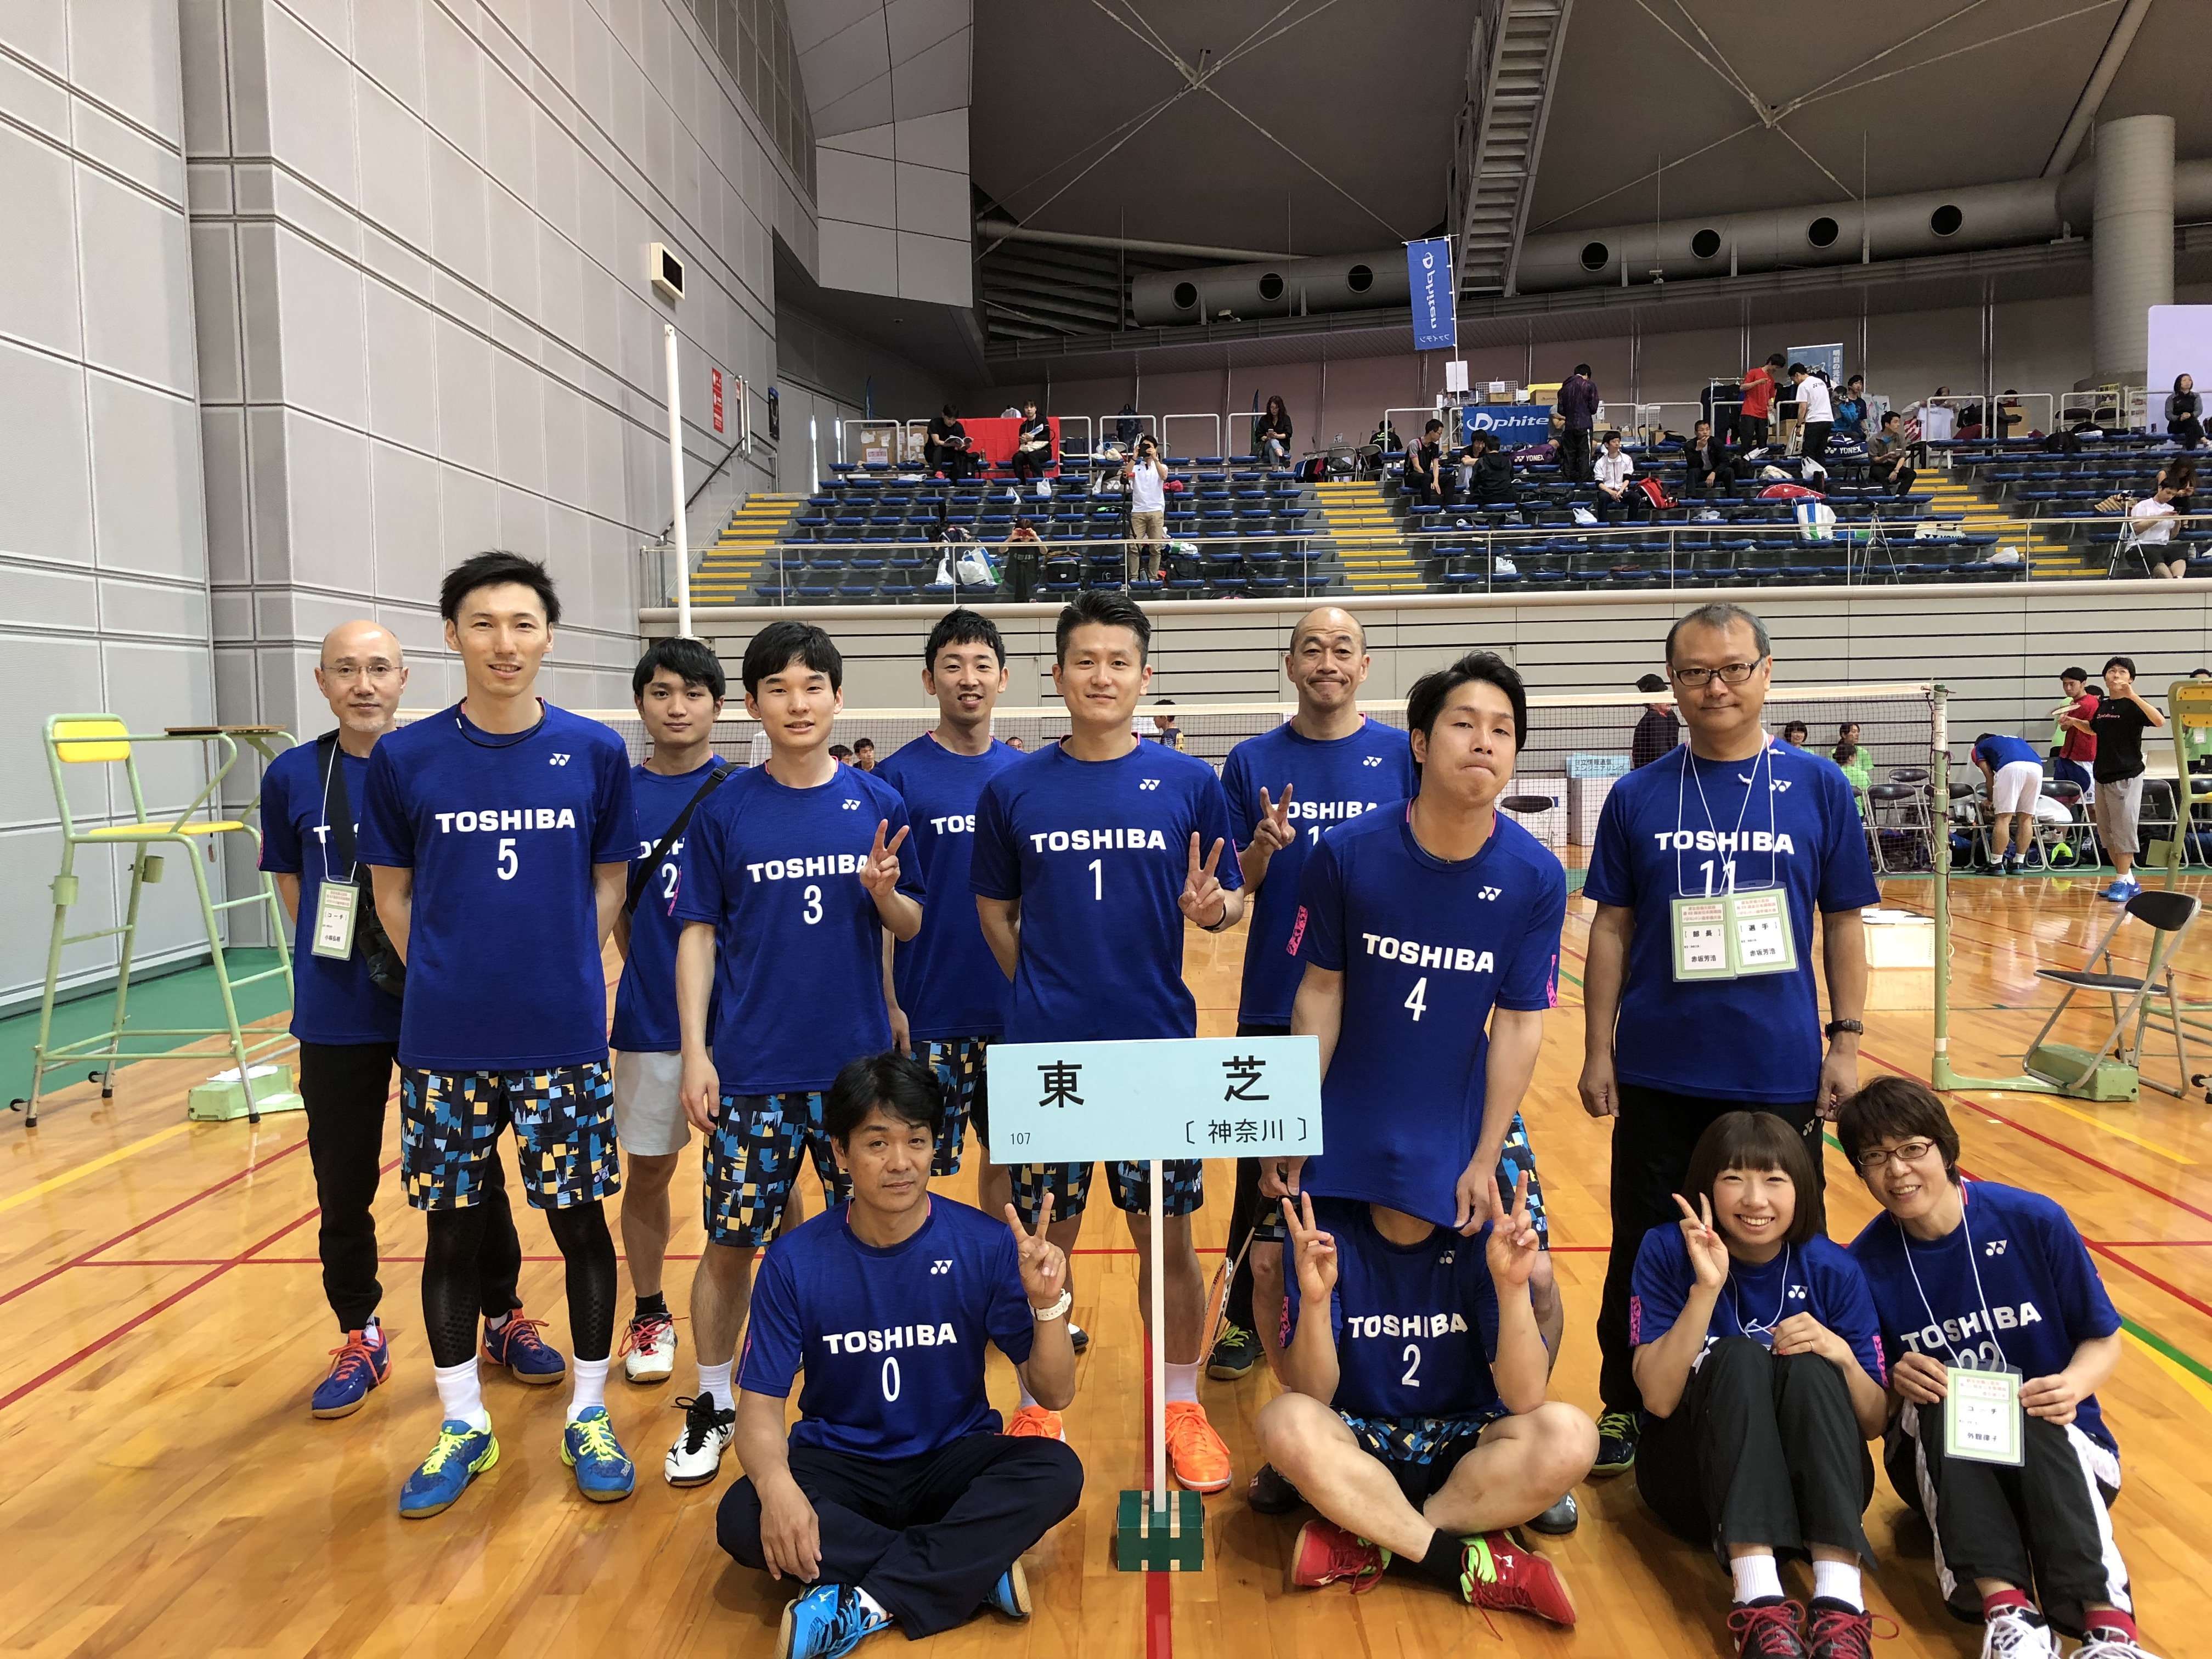 Mr. Hino, donned the number 1 uniform, with members of the Toshiba Badminton Club.